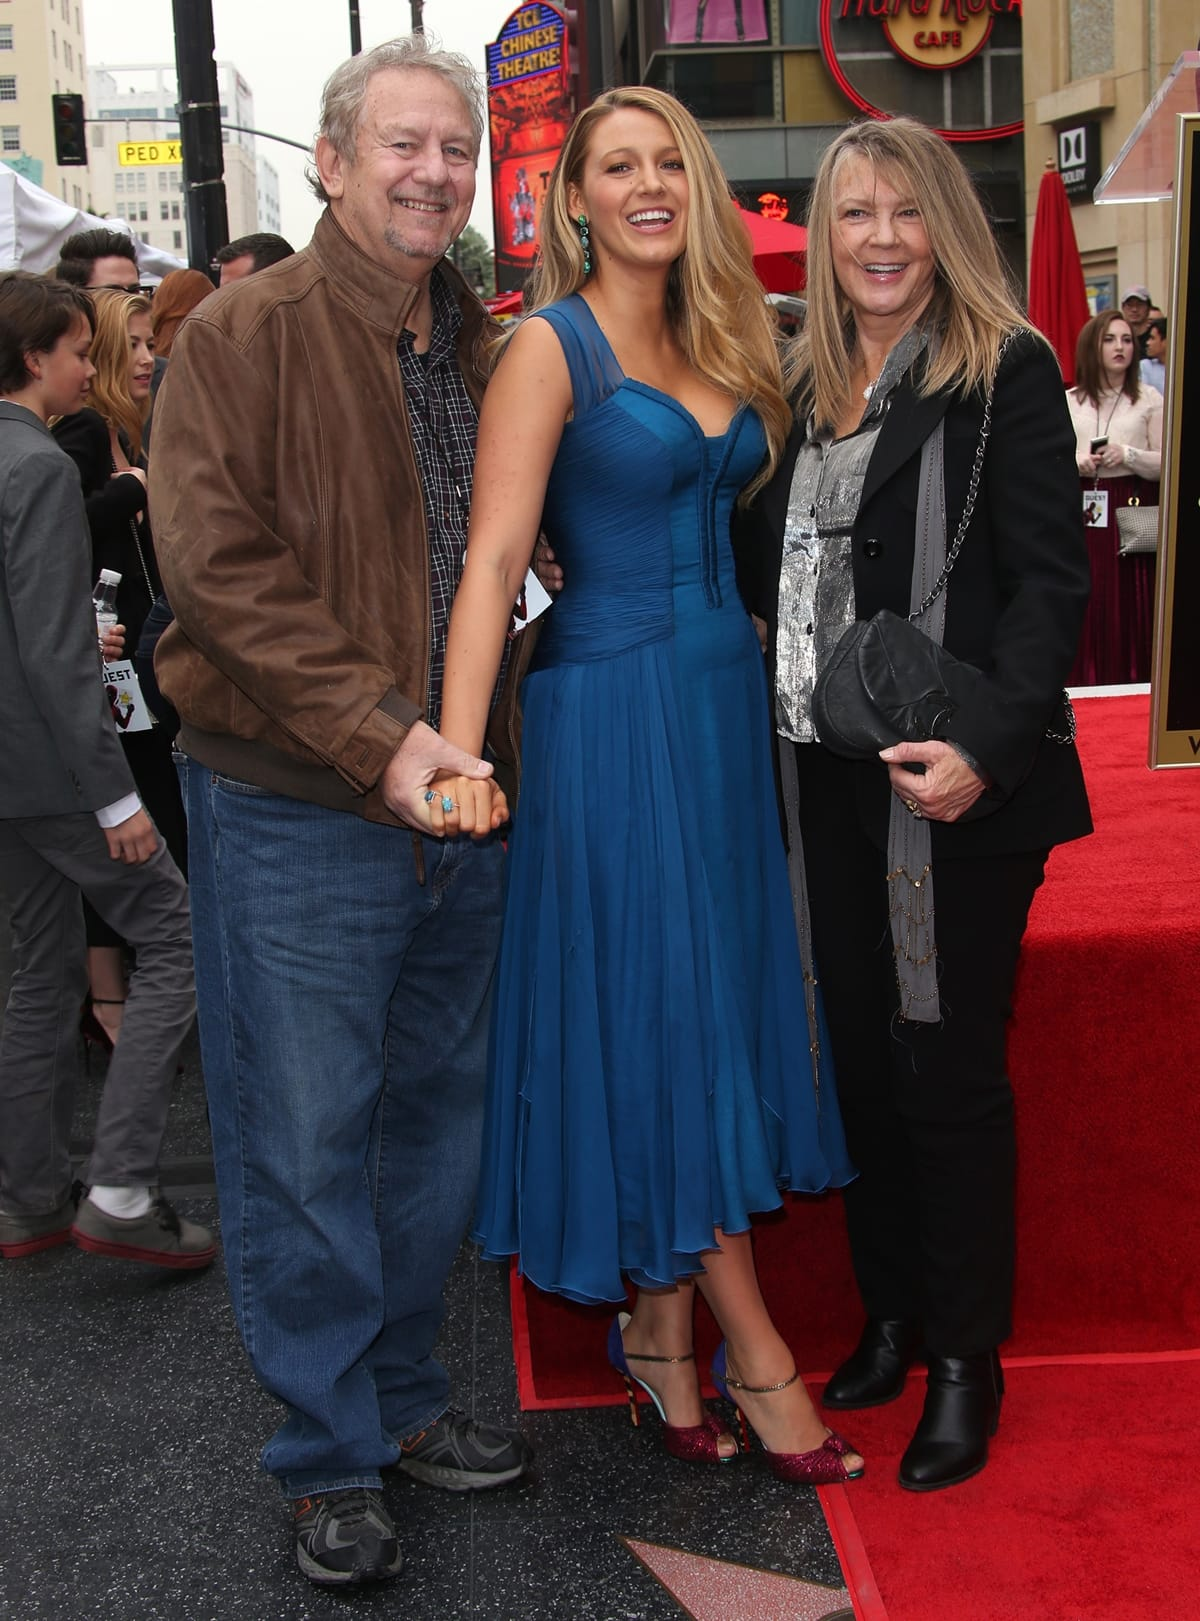 Blake Lively with her mother Elaine (née McAlpin) and her father, Ernie Lively (né Ernest Wilson Brown Jr.)